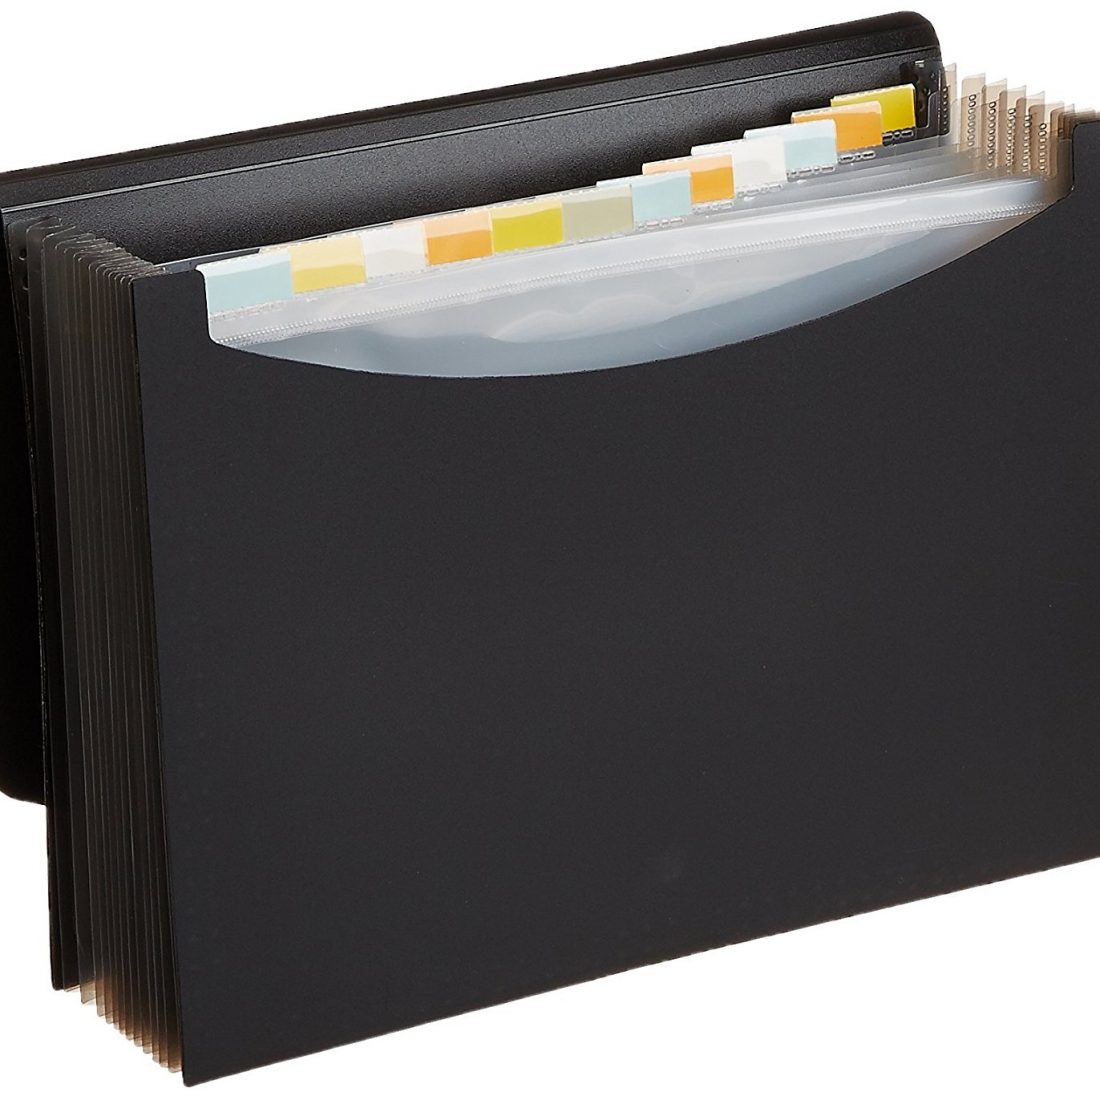 Amazon India : AmazonBasics Expanding File, Letter Size - Black - with 13 pockets at Rs.325